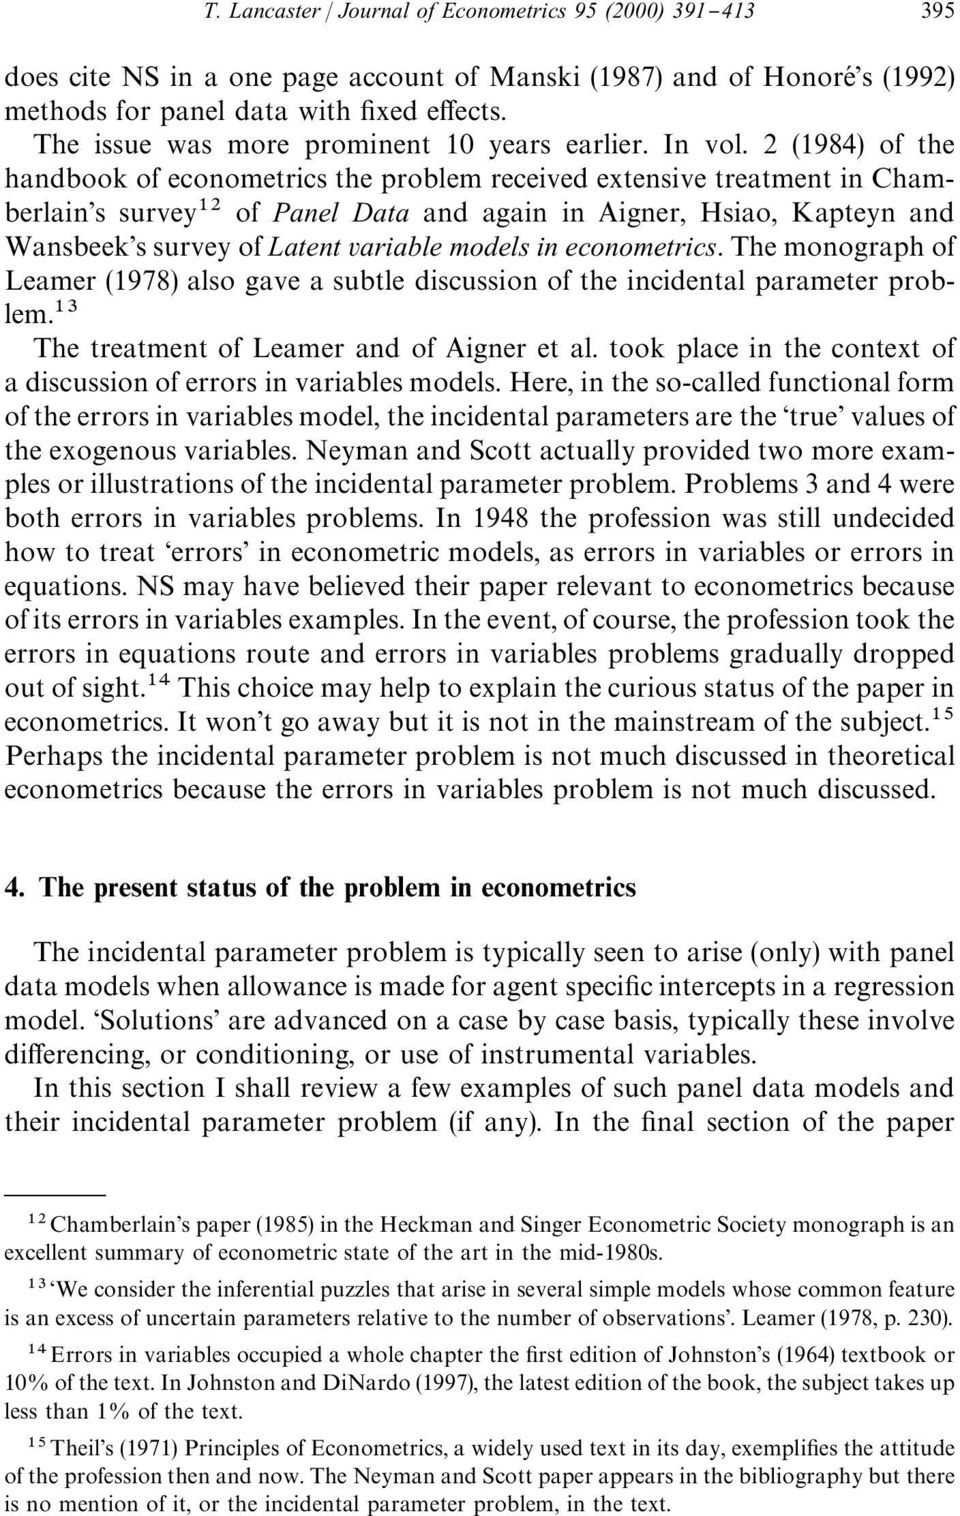 2 (1984) of the handbook of econometrics the problem received extensive treatment in Chamberlain's survey of Panel Data and again in Aigner, Hsiao, Kapteyn and Wansbeek's survey of Latent variable